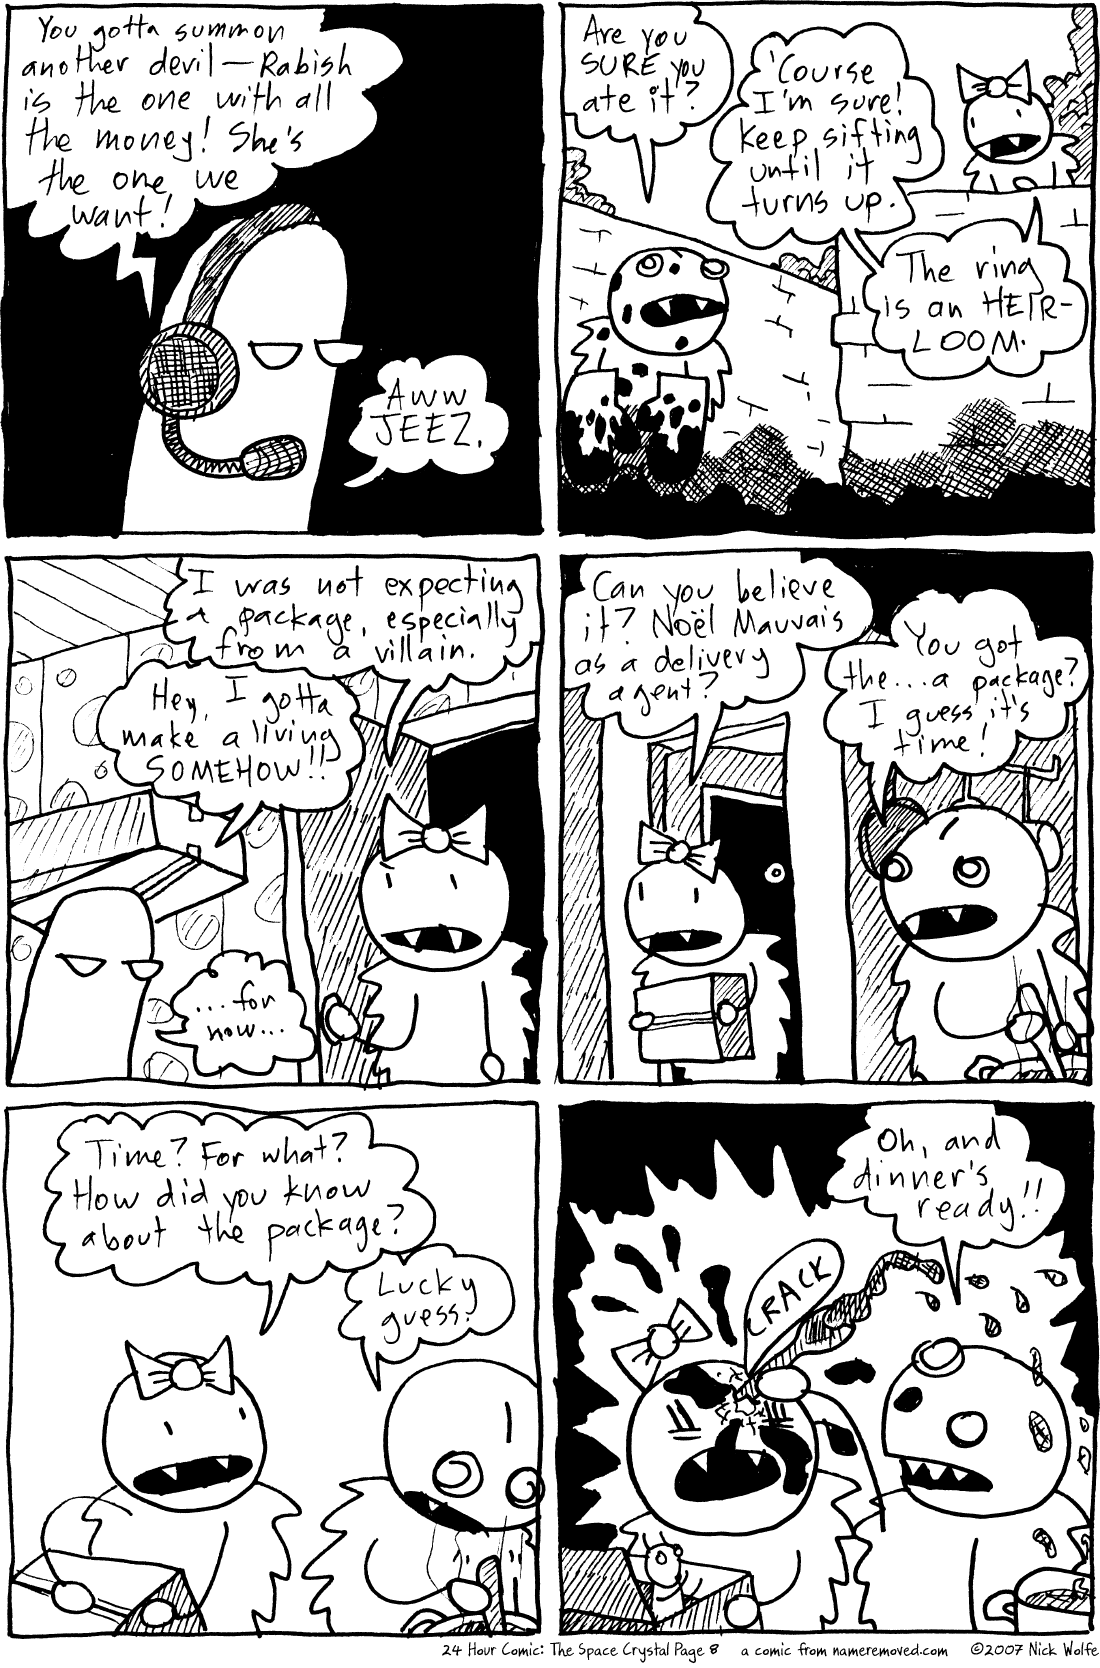 24 Hour Comic: The Space Crystal Page 8